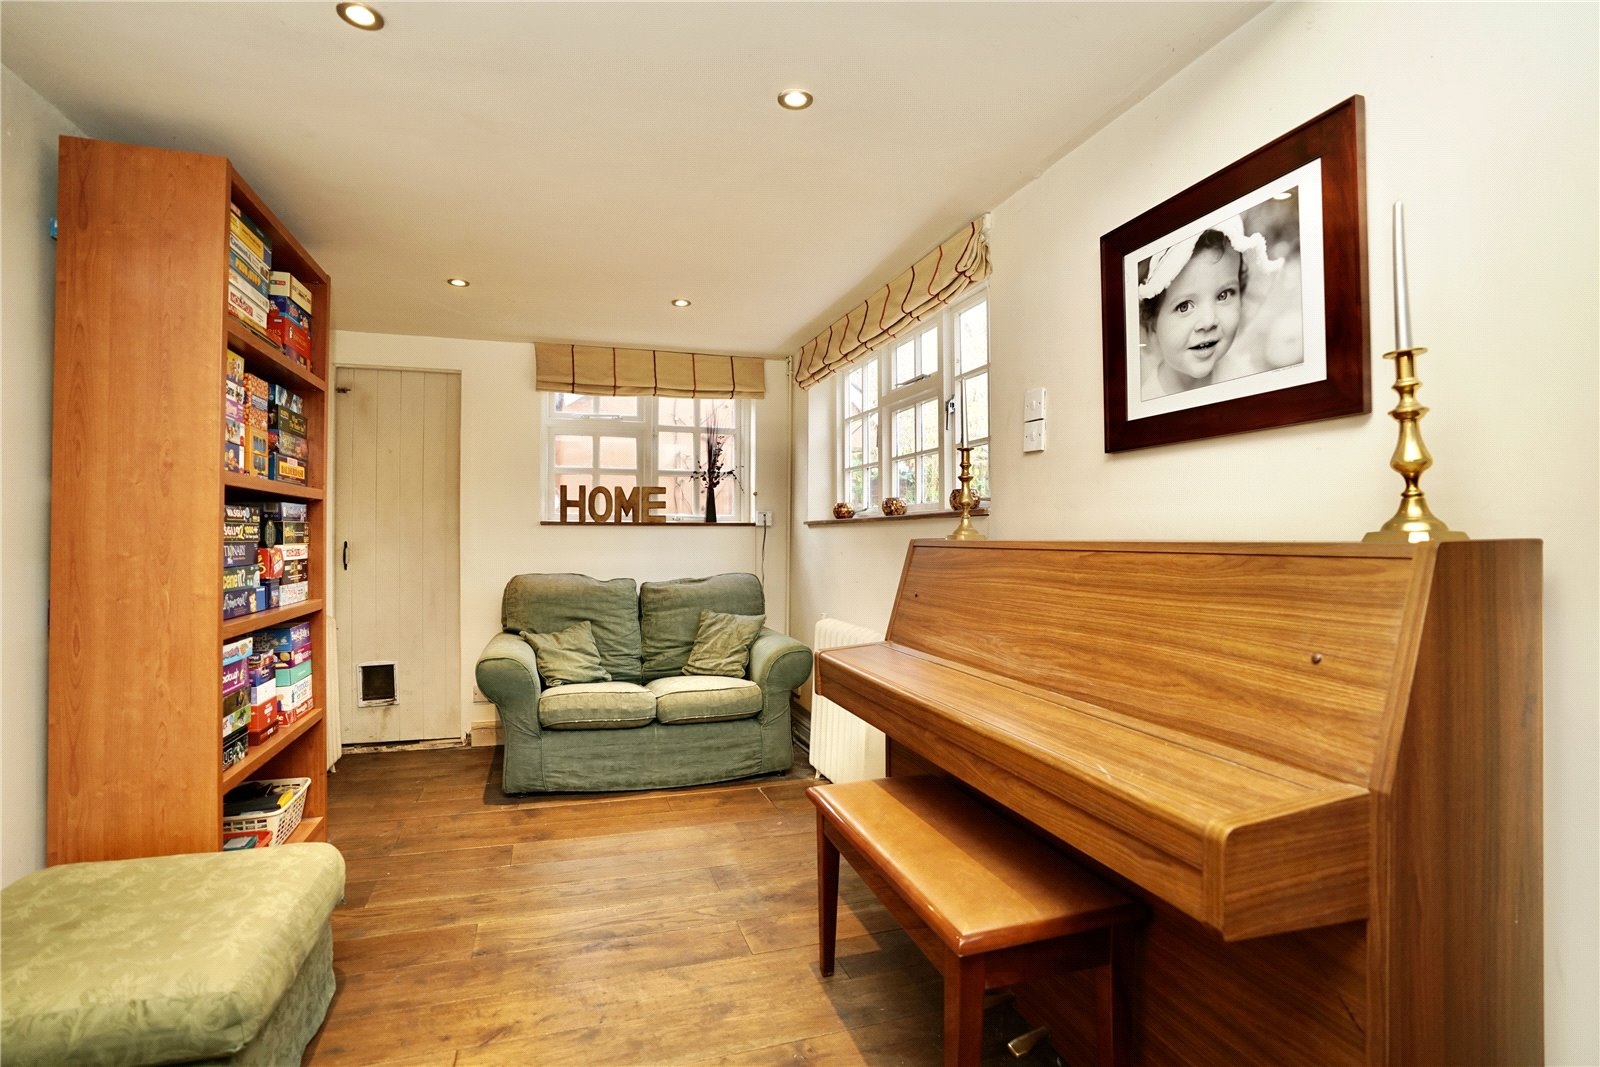 4 bed for sale in The Town, Great Staughton 6